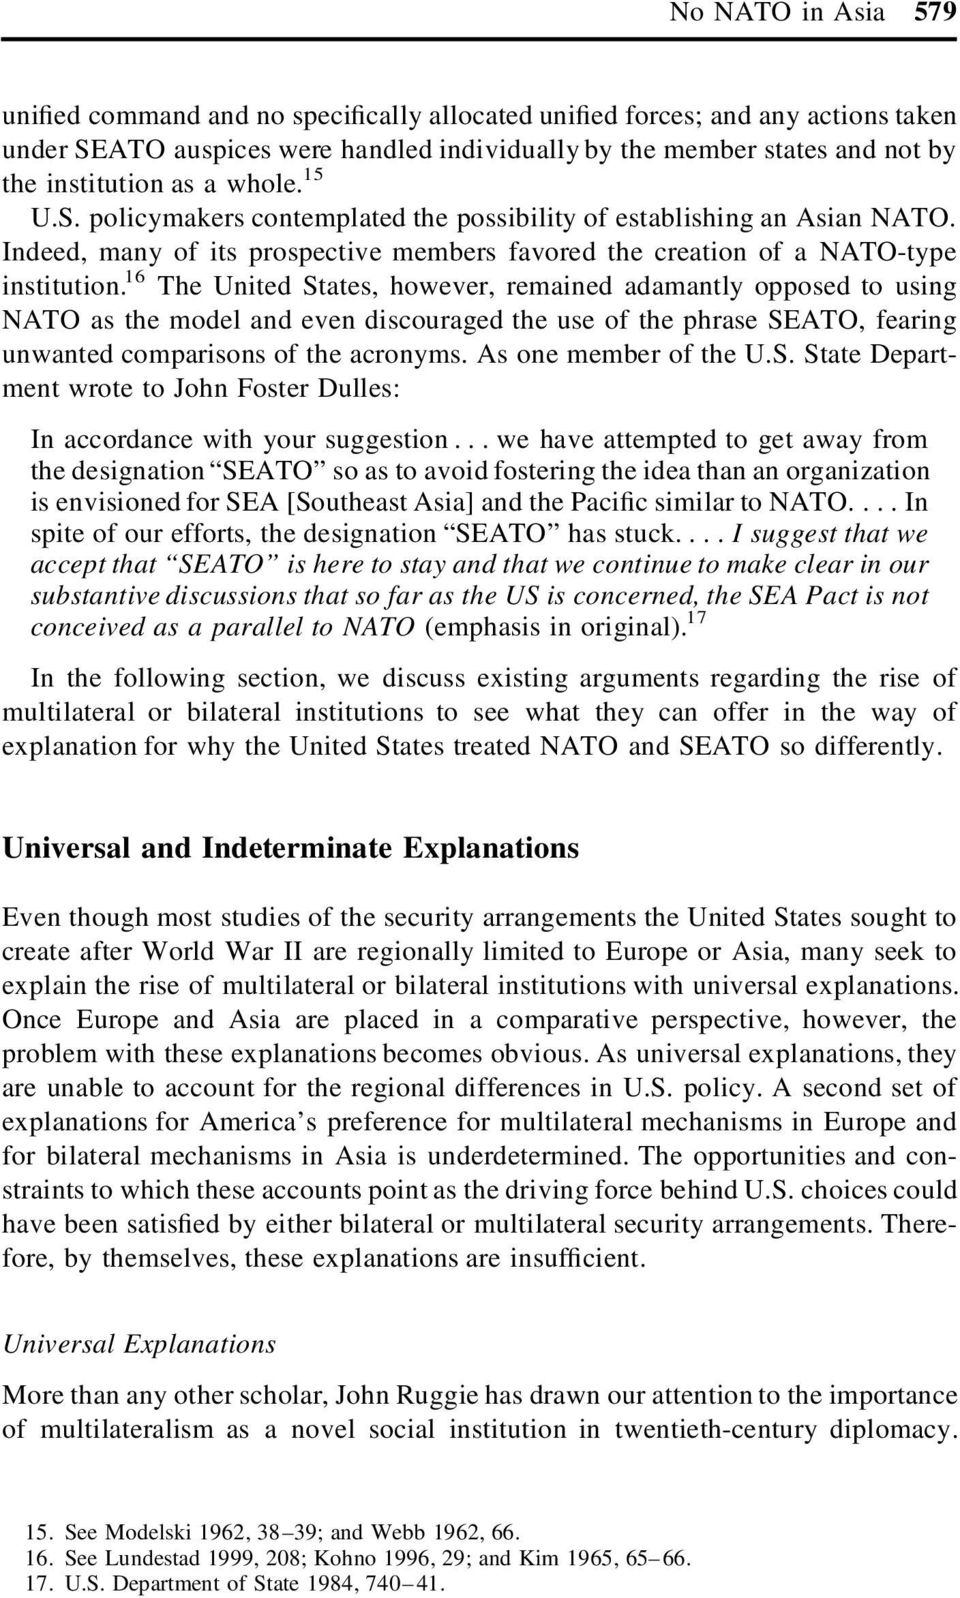 16 The United States, however, remained adamantly opposed to using NATO as the model and even discouraged the use of the phrase SEATO, fearing unwanted comparisons of the acronyms.